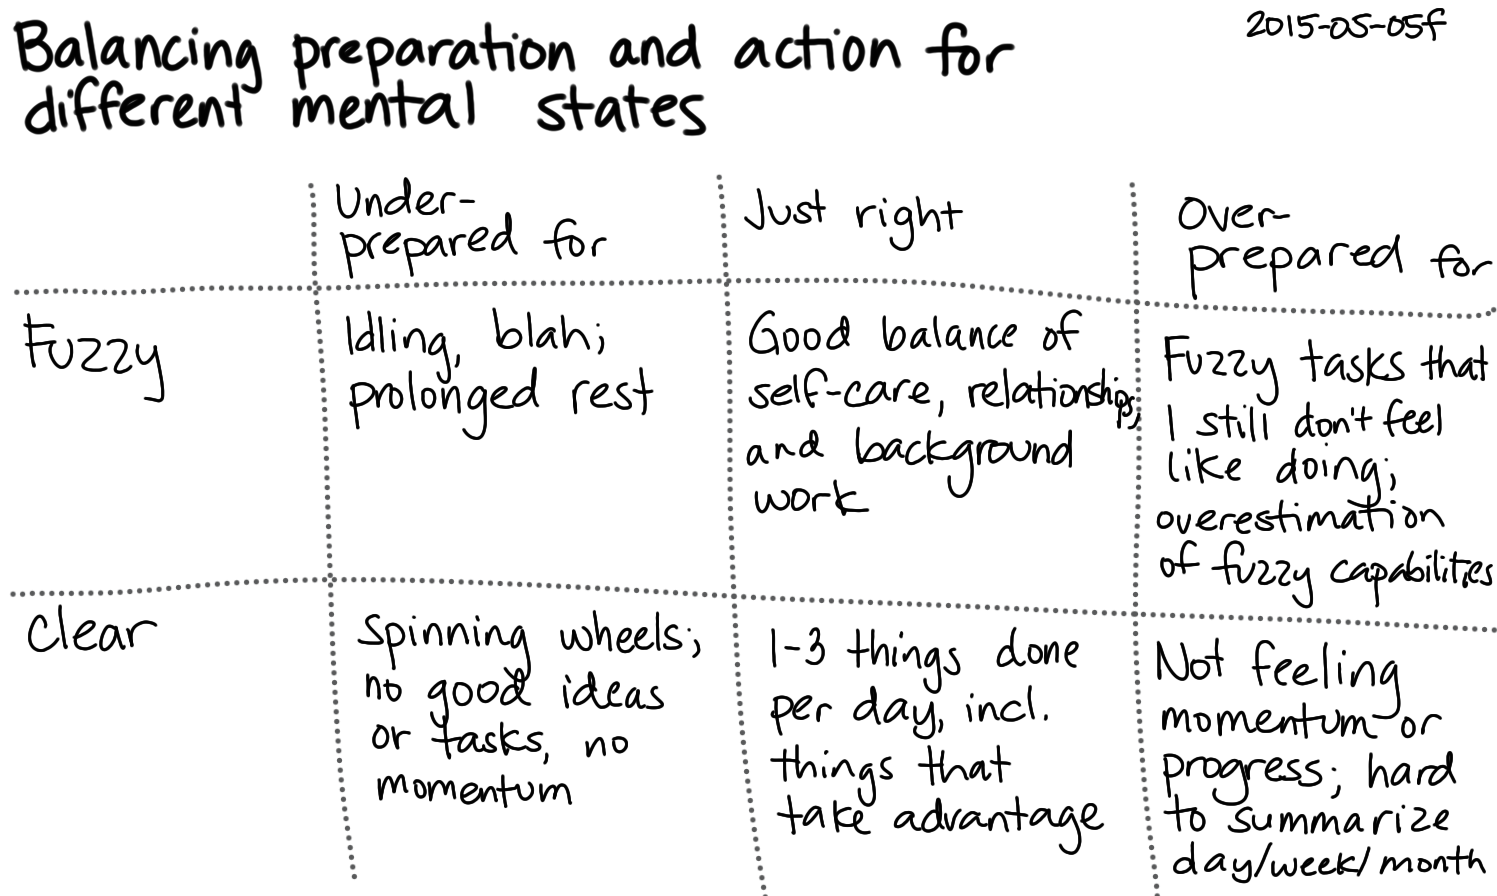 2015-05-05f Balancing preparation and action in different mental states -- index card #fuzzy #sharp.png